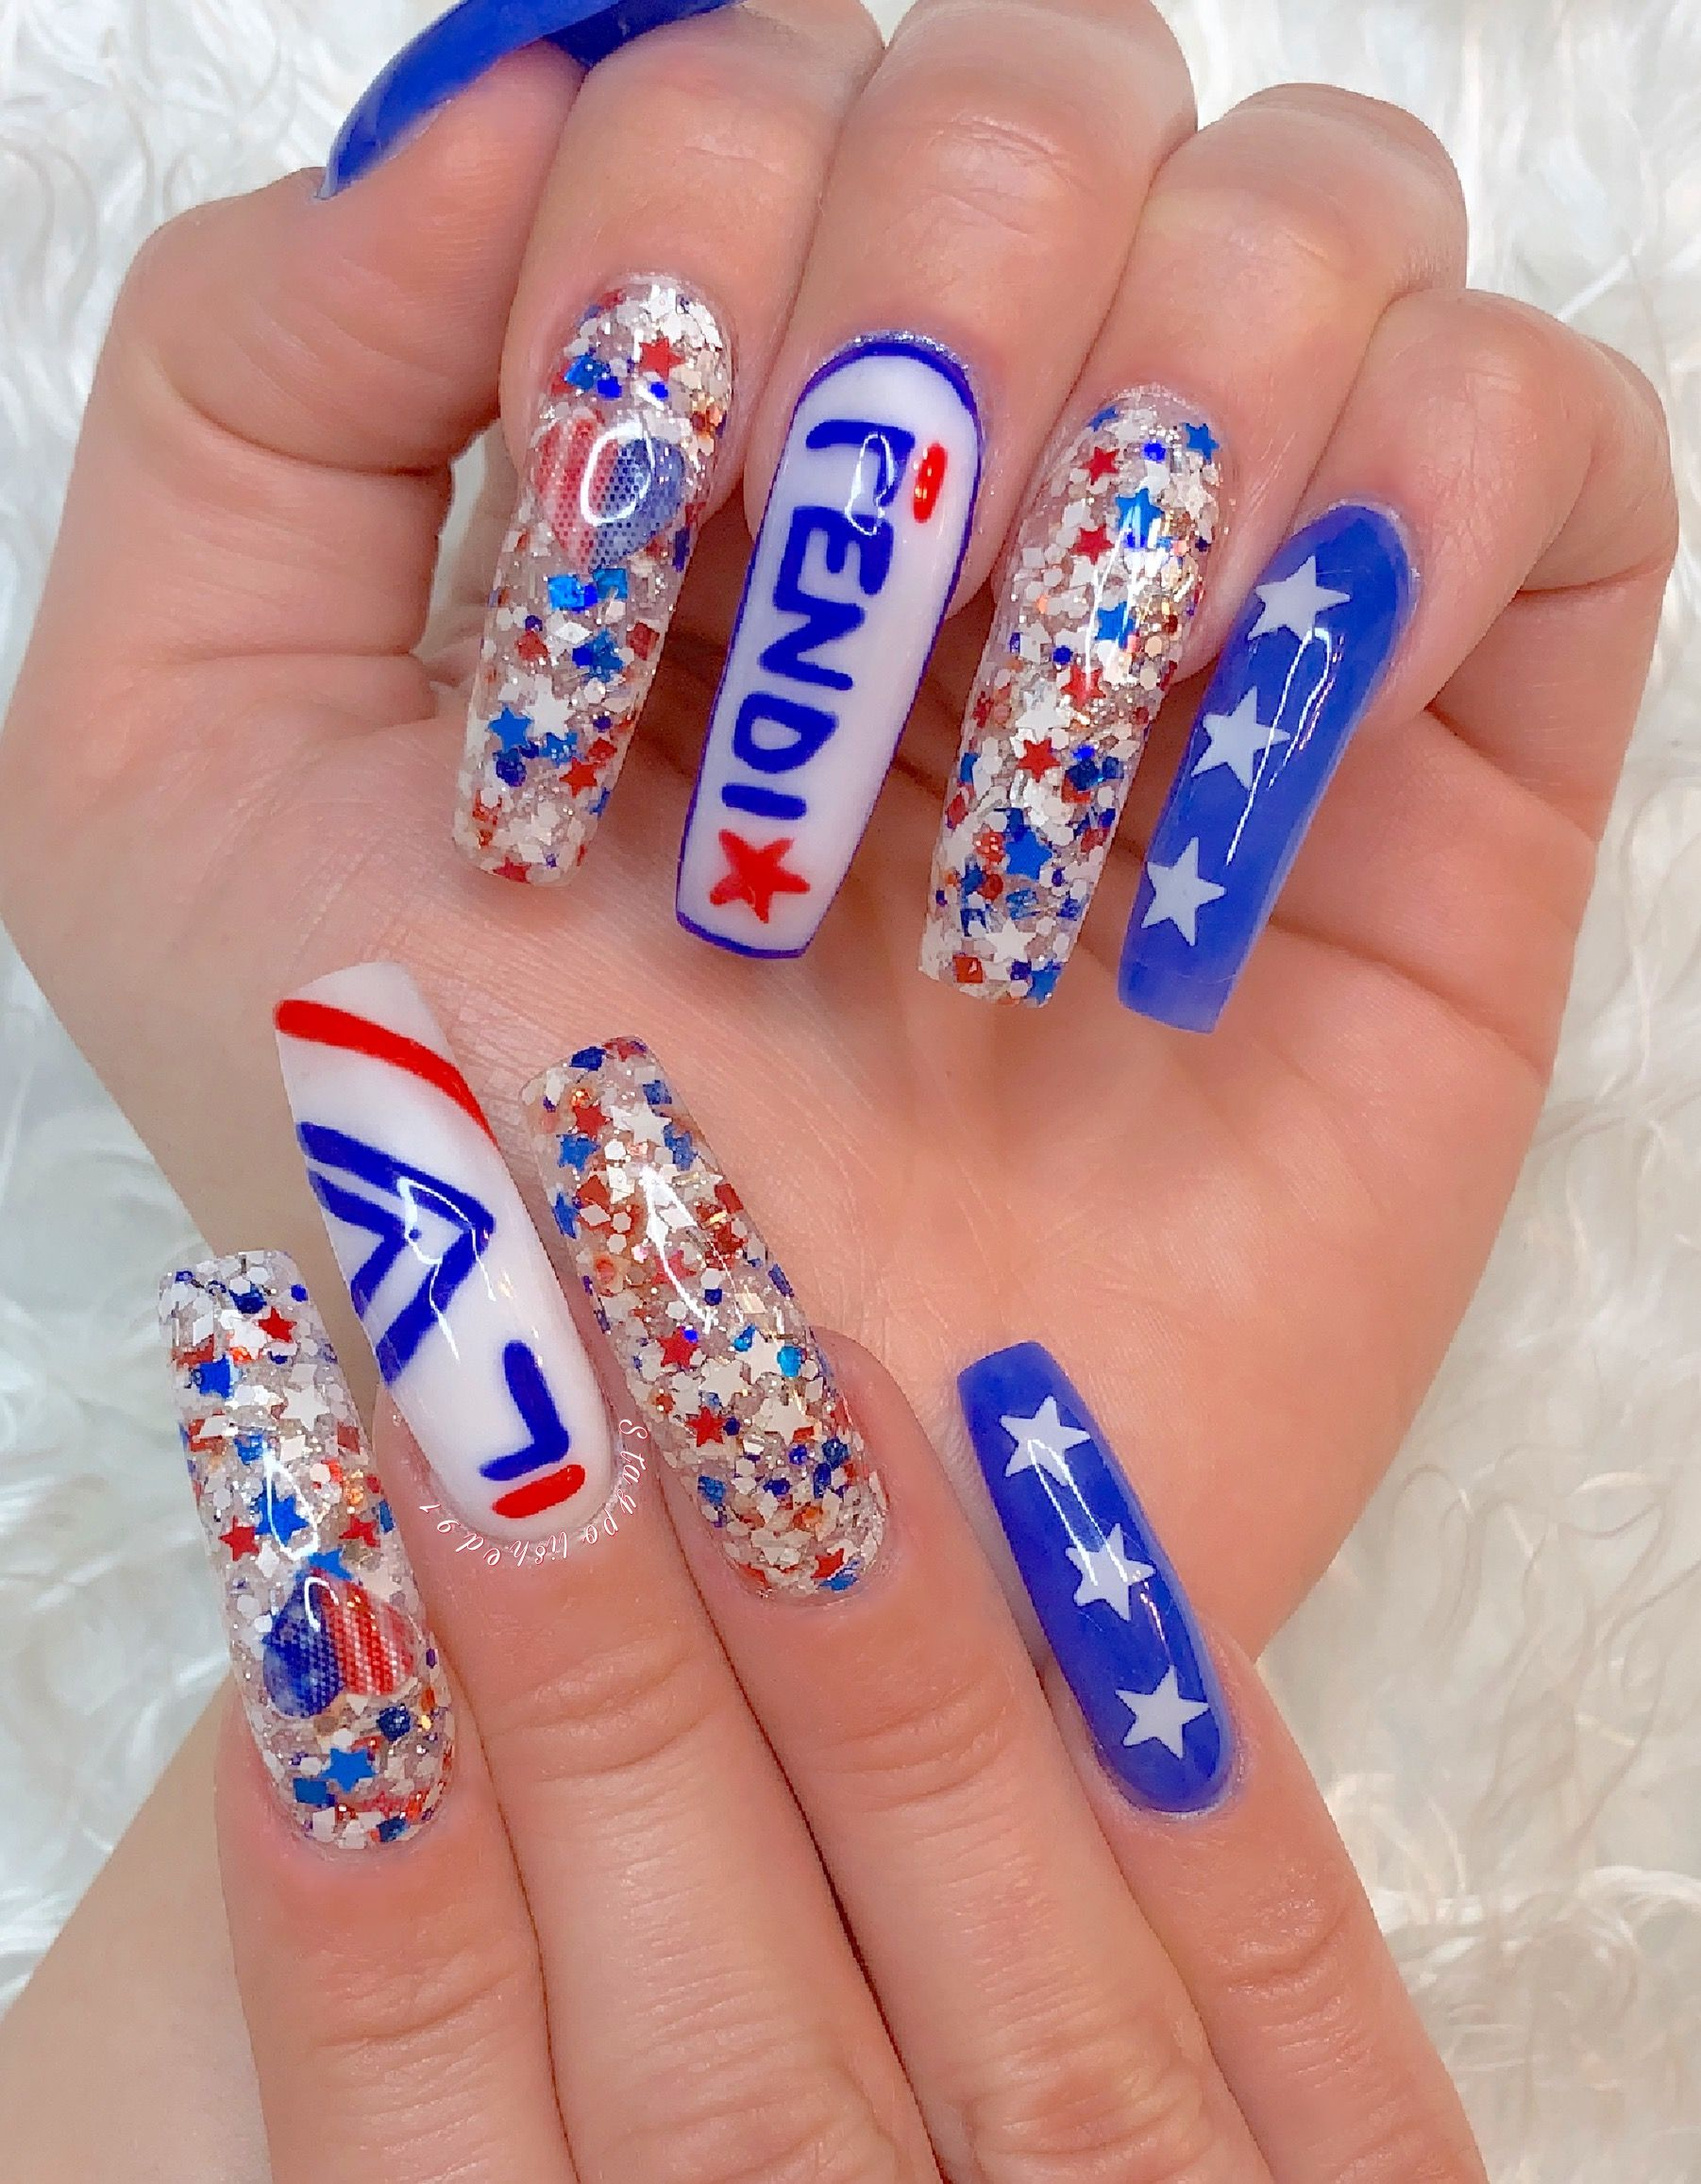 Staypolished91 Instagram 4th Of July Nails Blue Acrylic Nails Ombre Nail Designs